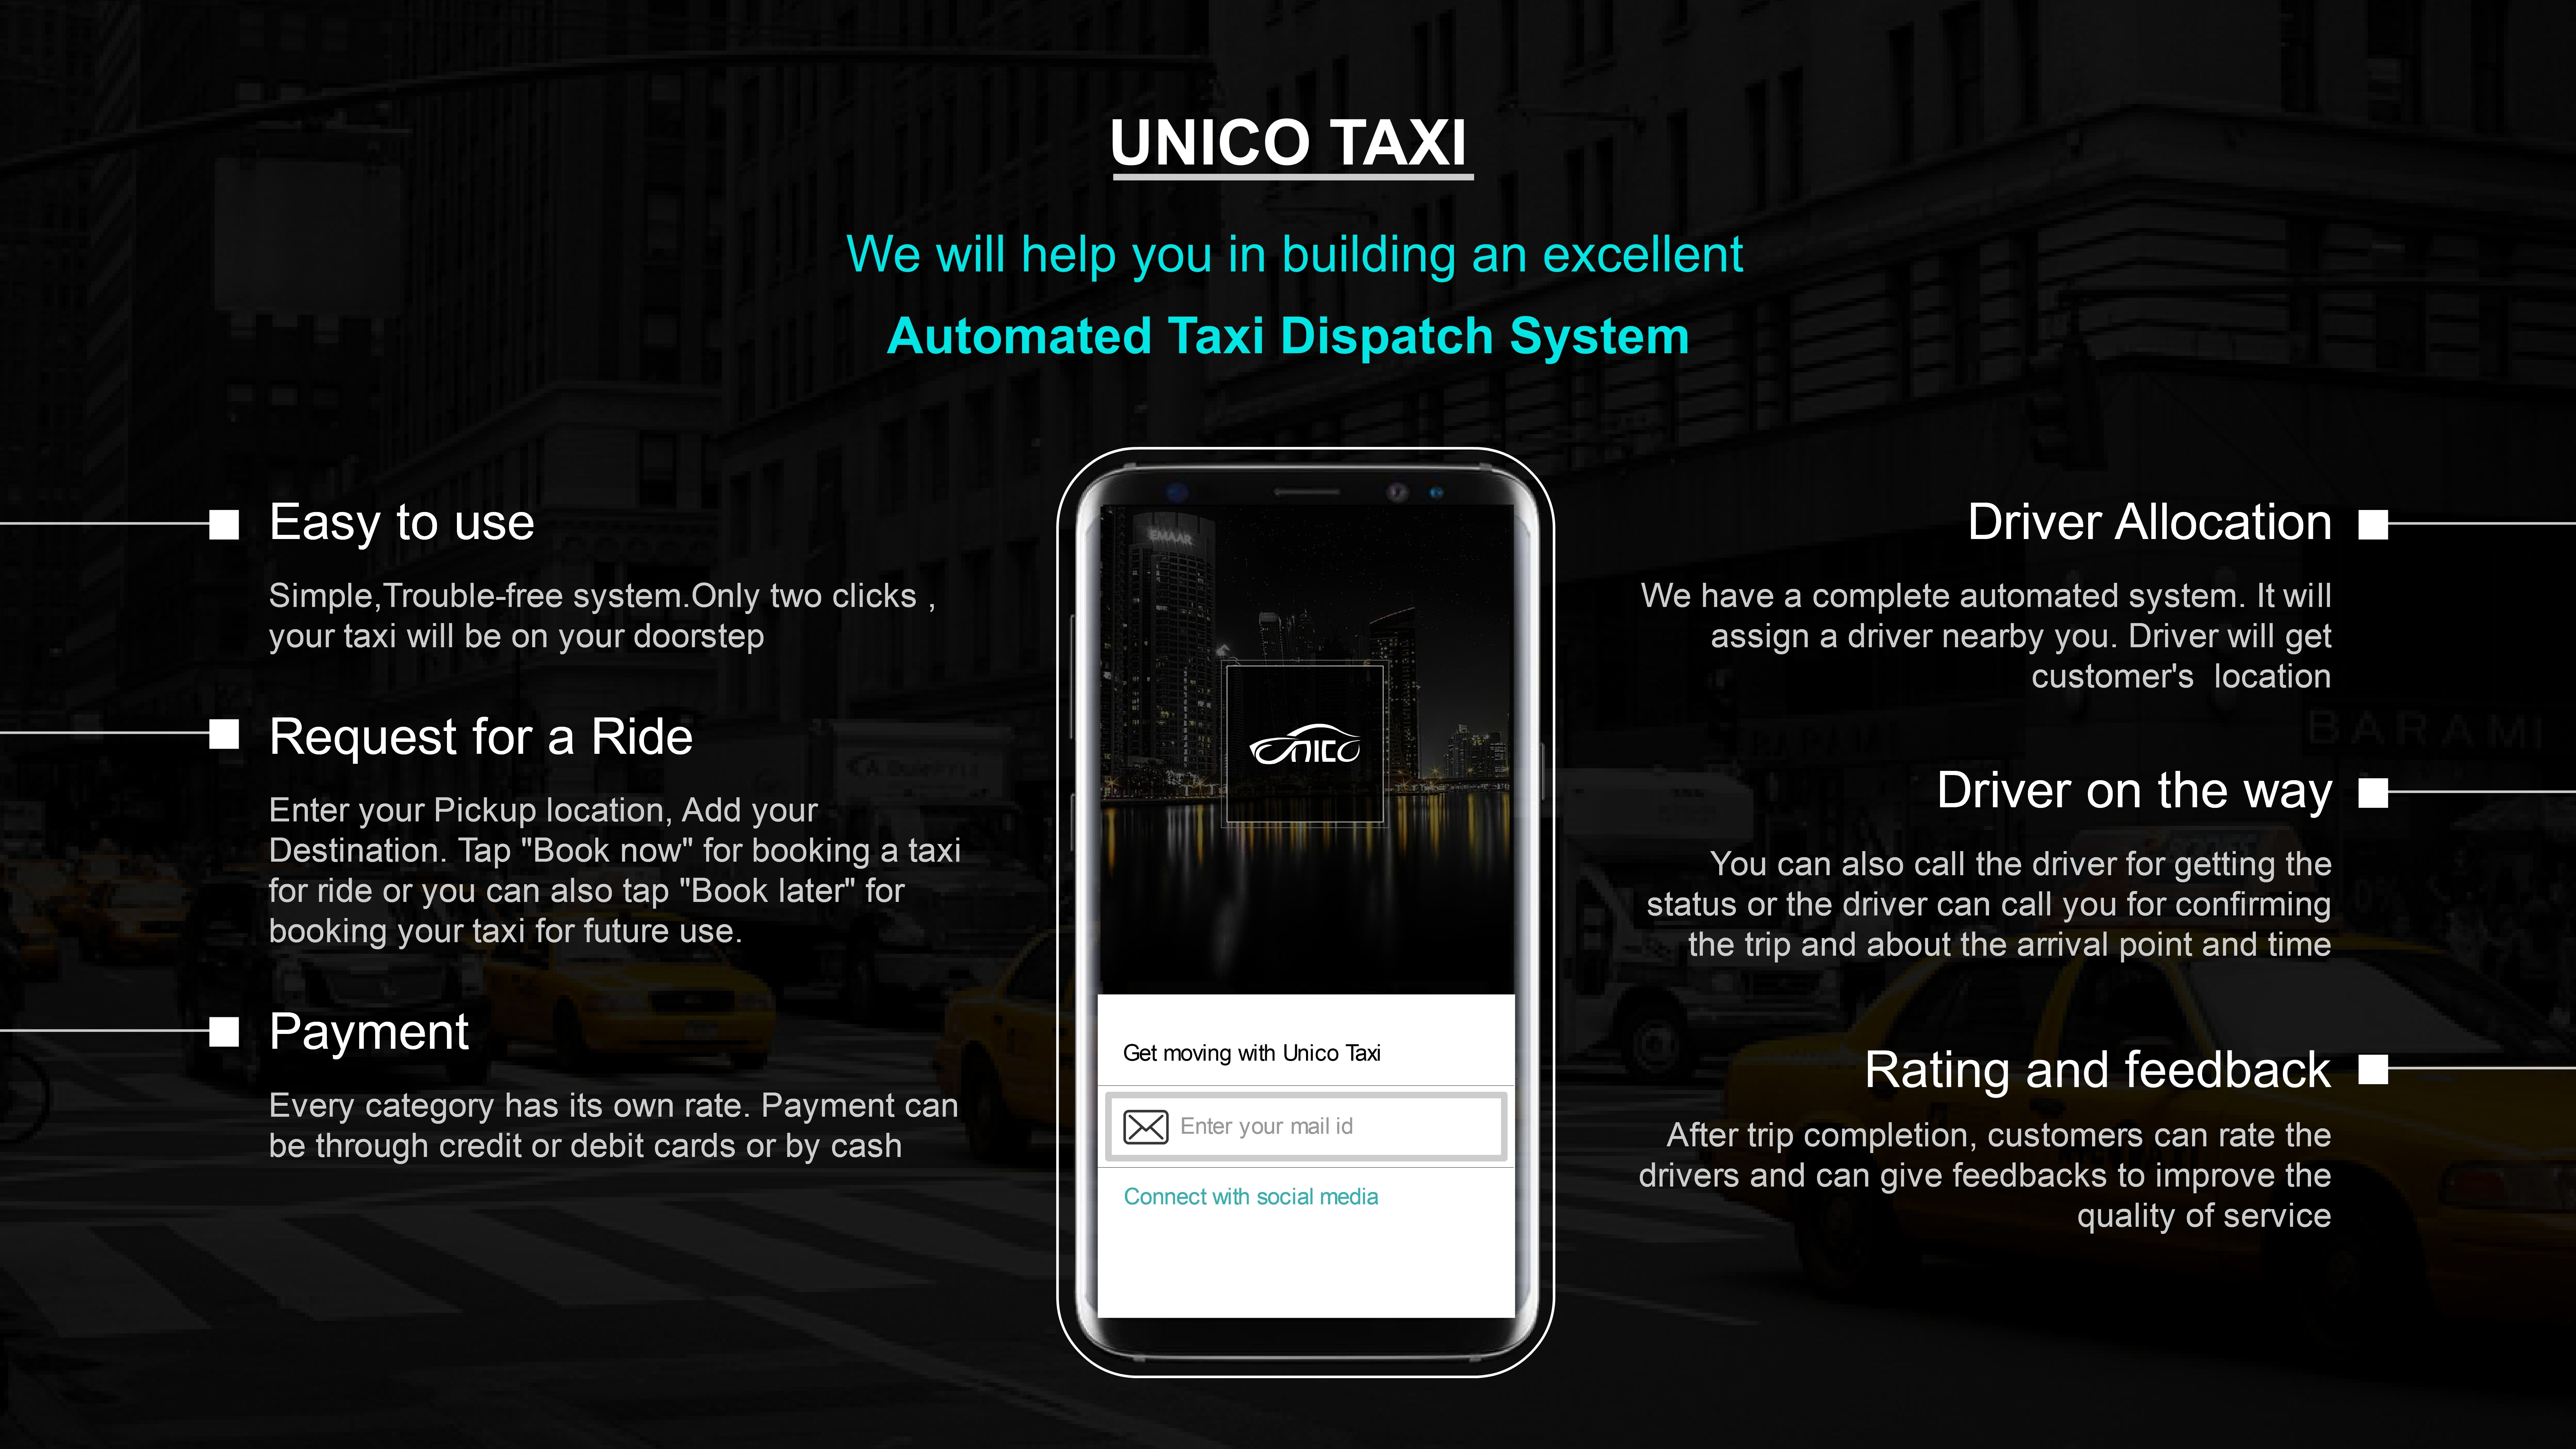 Unicotaxi provides a Scintillating Smart Dispatch Solution